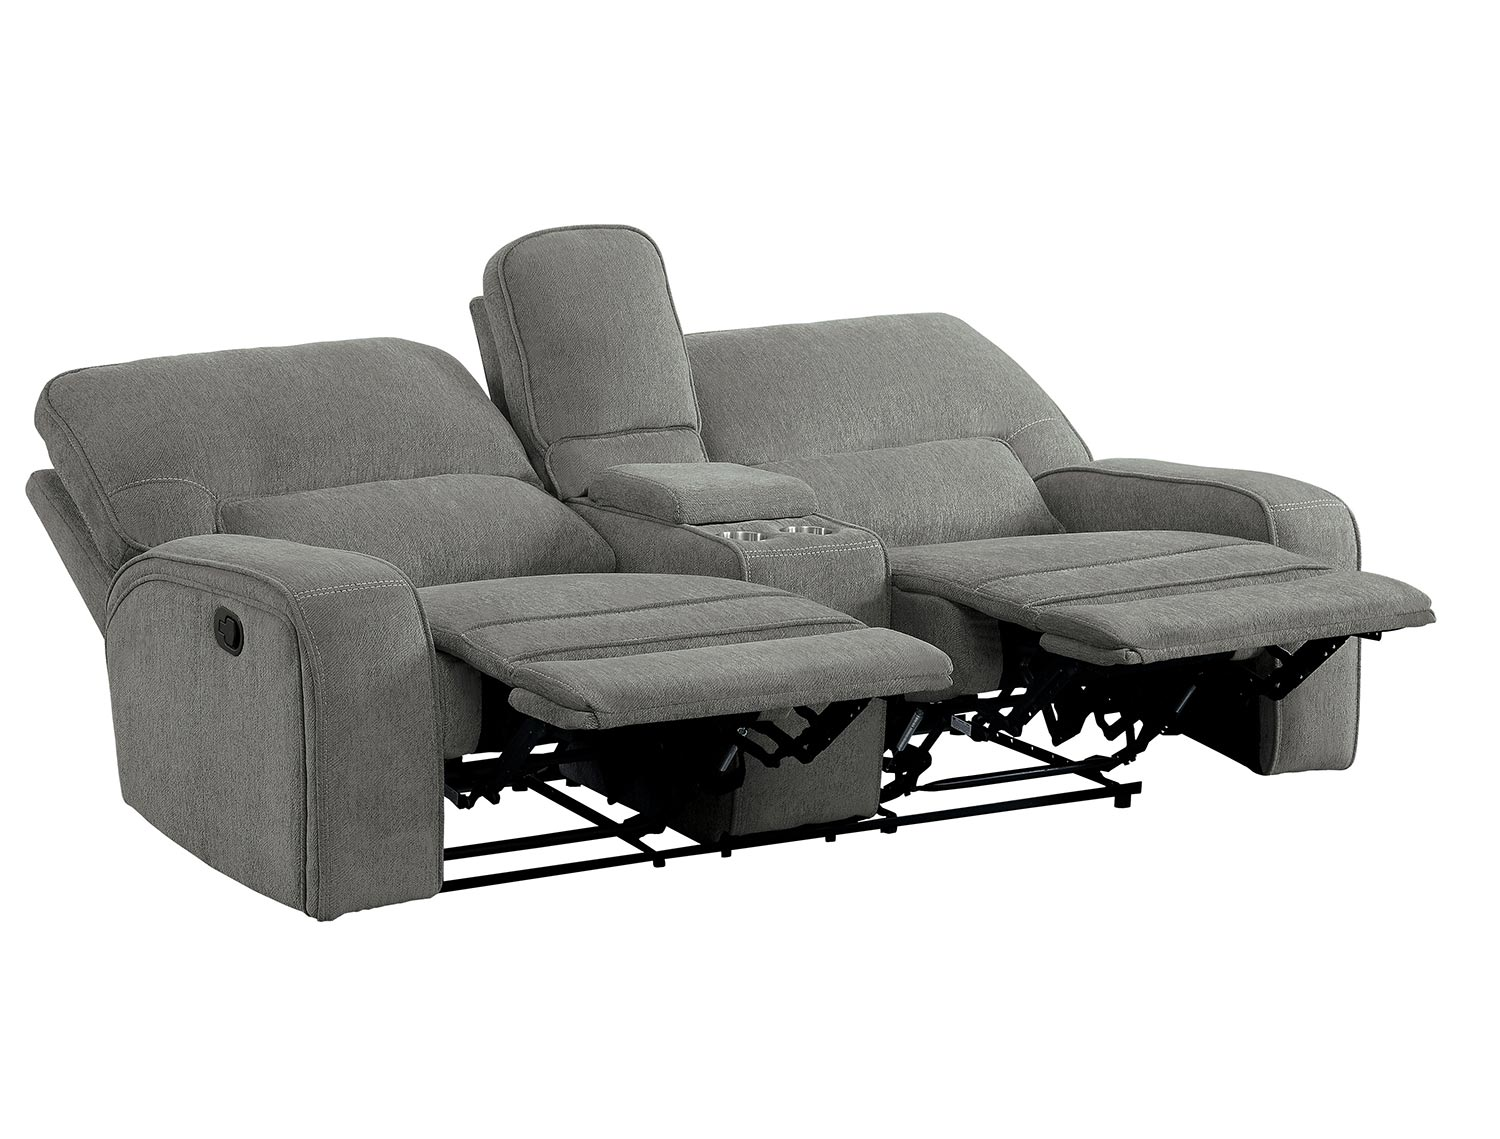 Homelegance Borneo Power Double Reclining Love Seat with Center Console and Power Headrests - Mocha